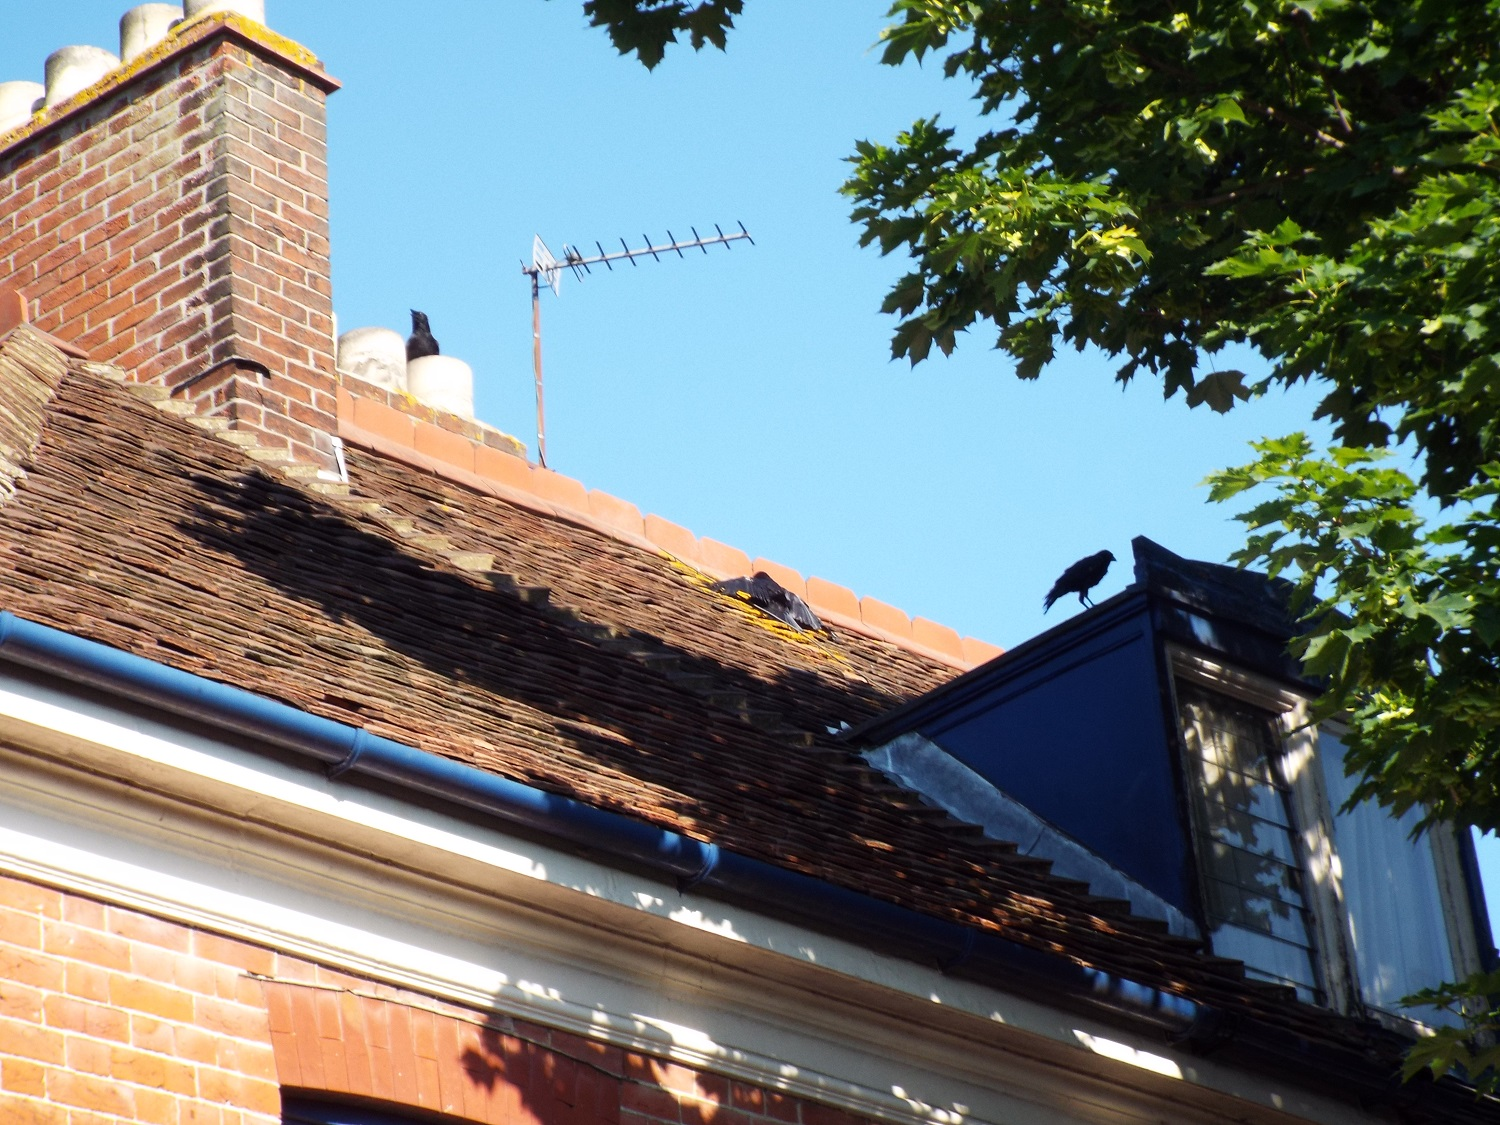 Crow family at the Newcome Arms, June 2017 - Mortimer (with wings outstretched) and parents